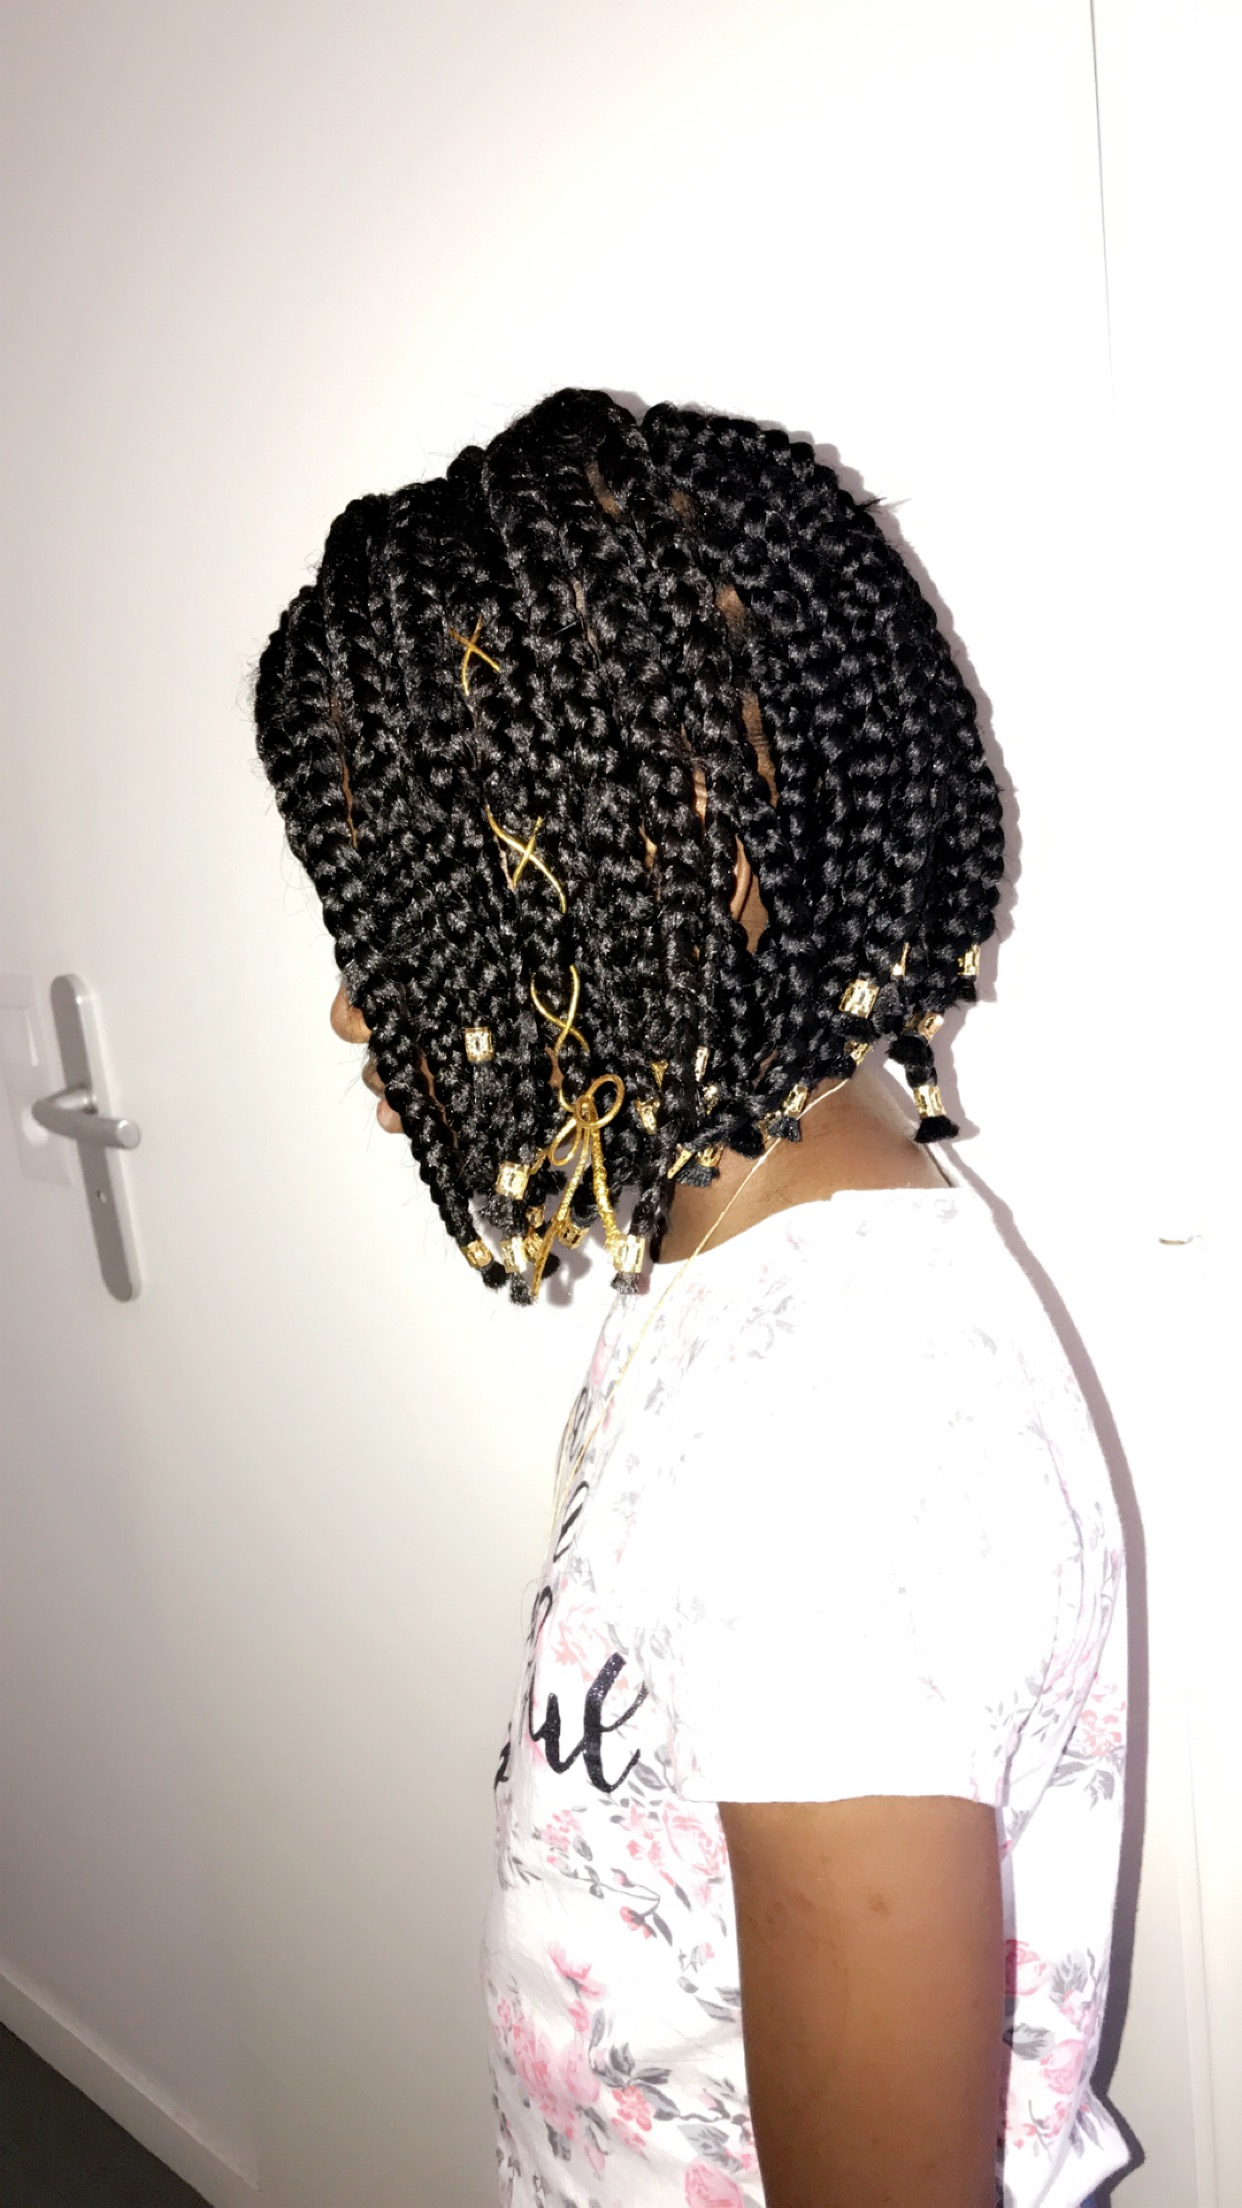 salon de coiffure afro tresse tresses box braids crochet braids vanilles tissages paris 75 77 78 91 92 93 94 95 IRQWZZLO